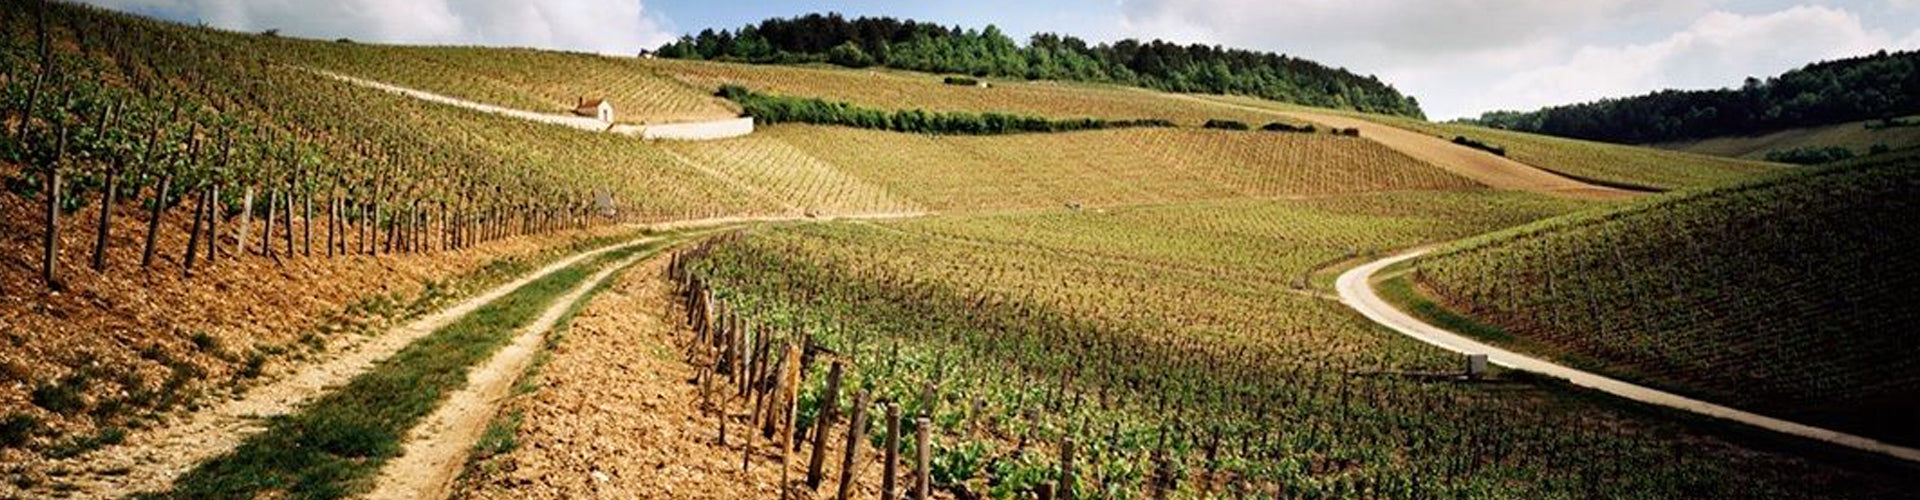 The Vineyards of Chablis in Burgundy, France